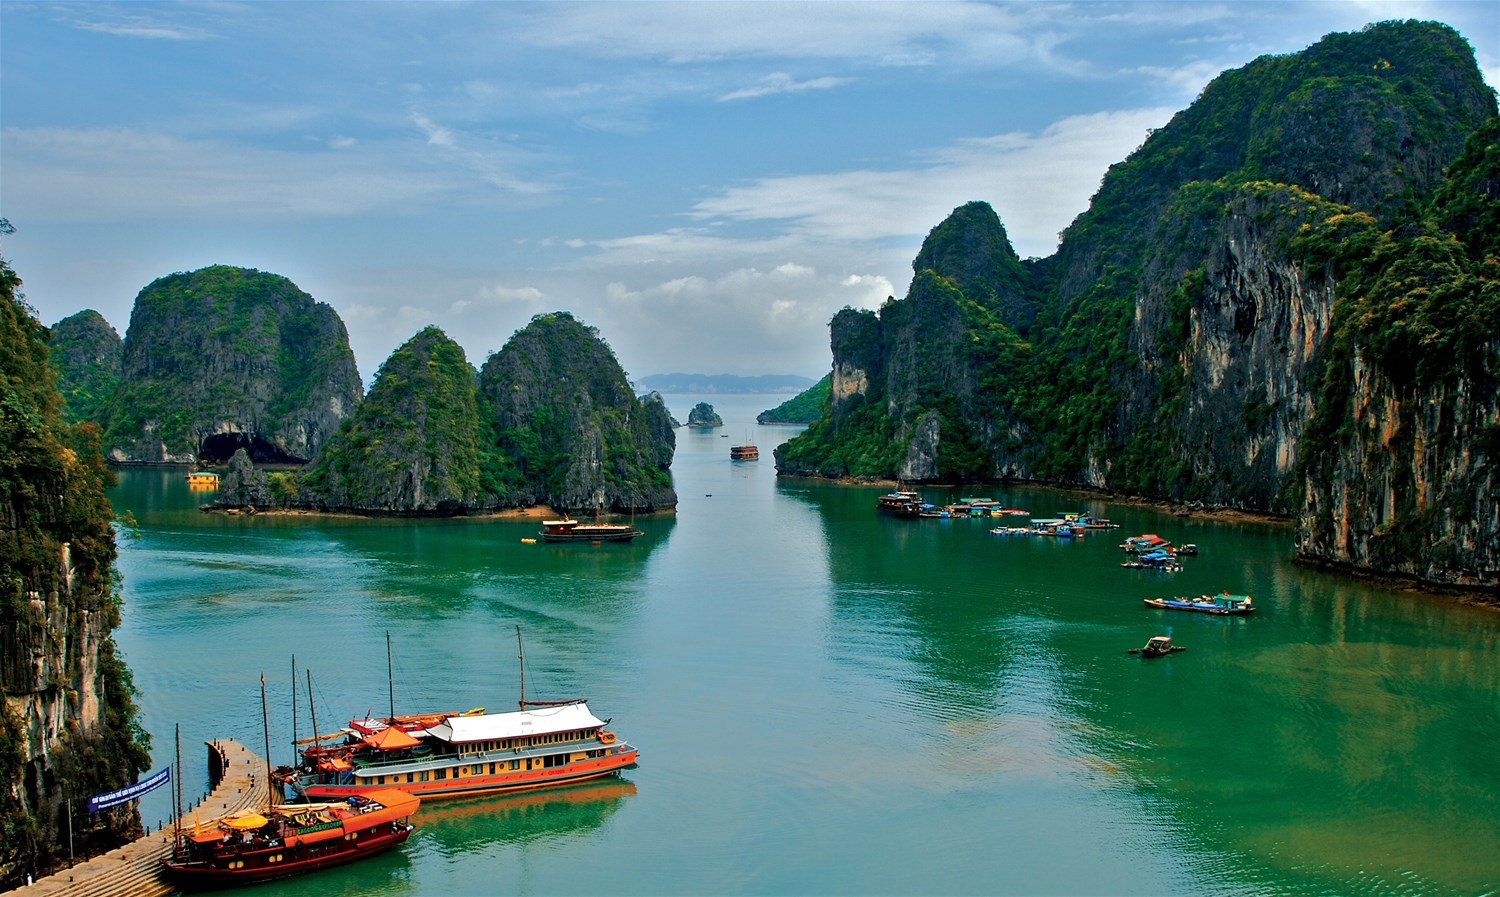 Whe is the Best Time to Visit Vietnam?